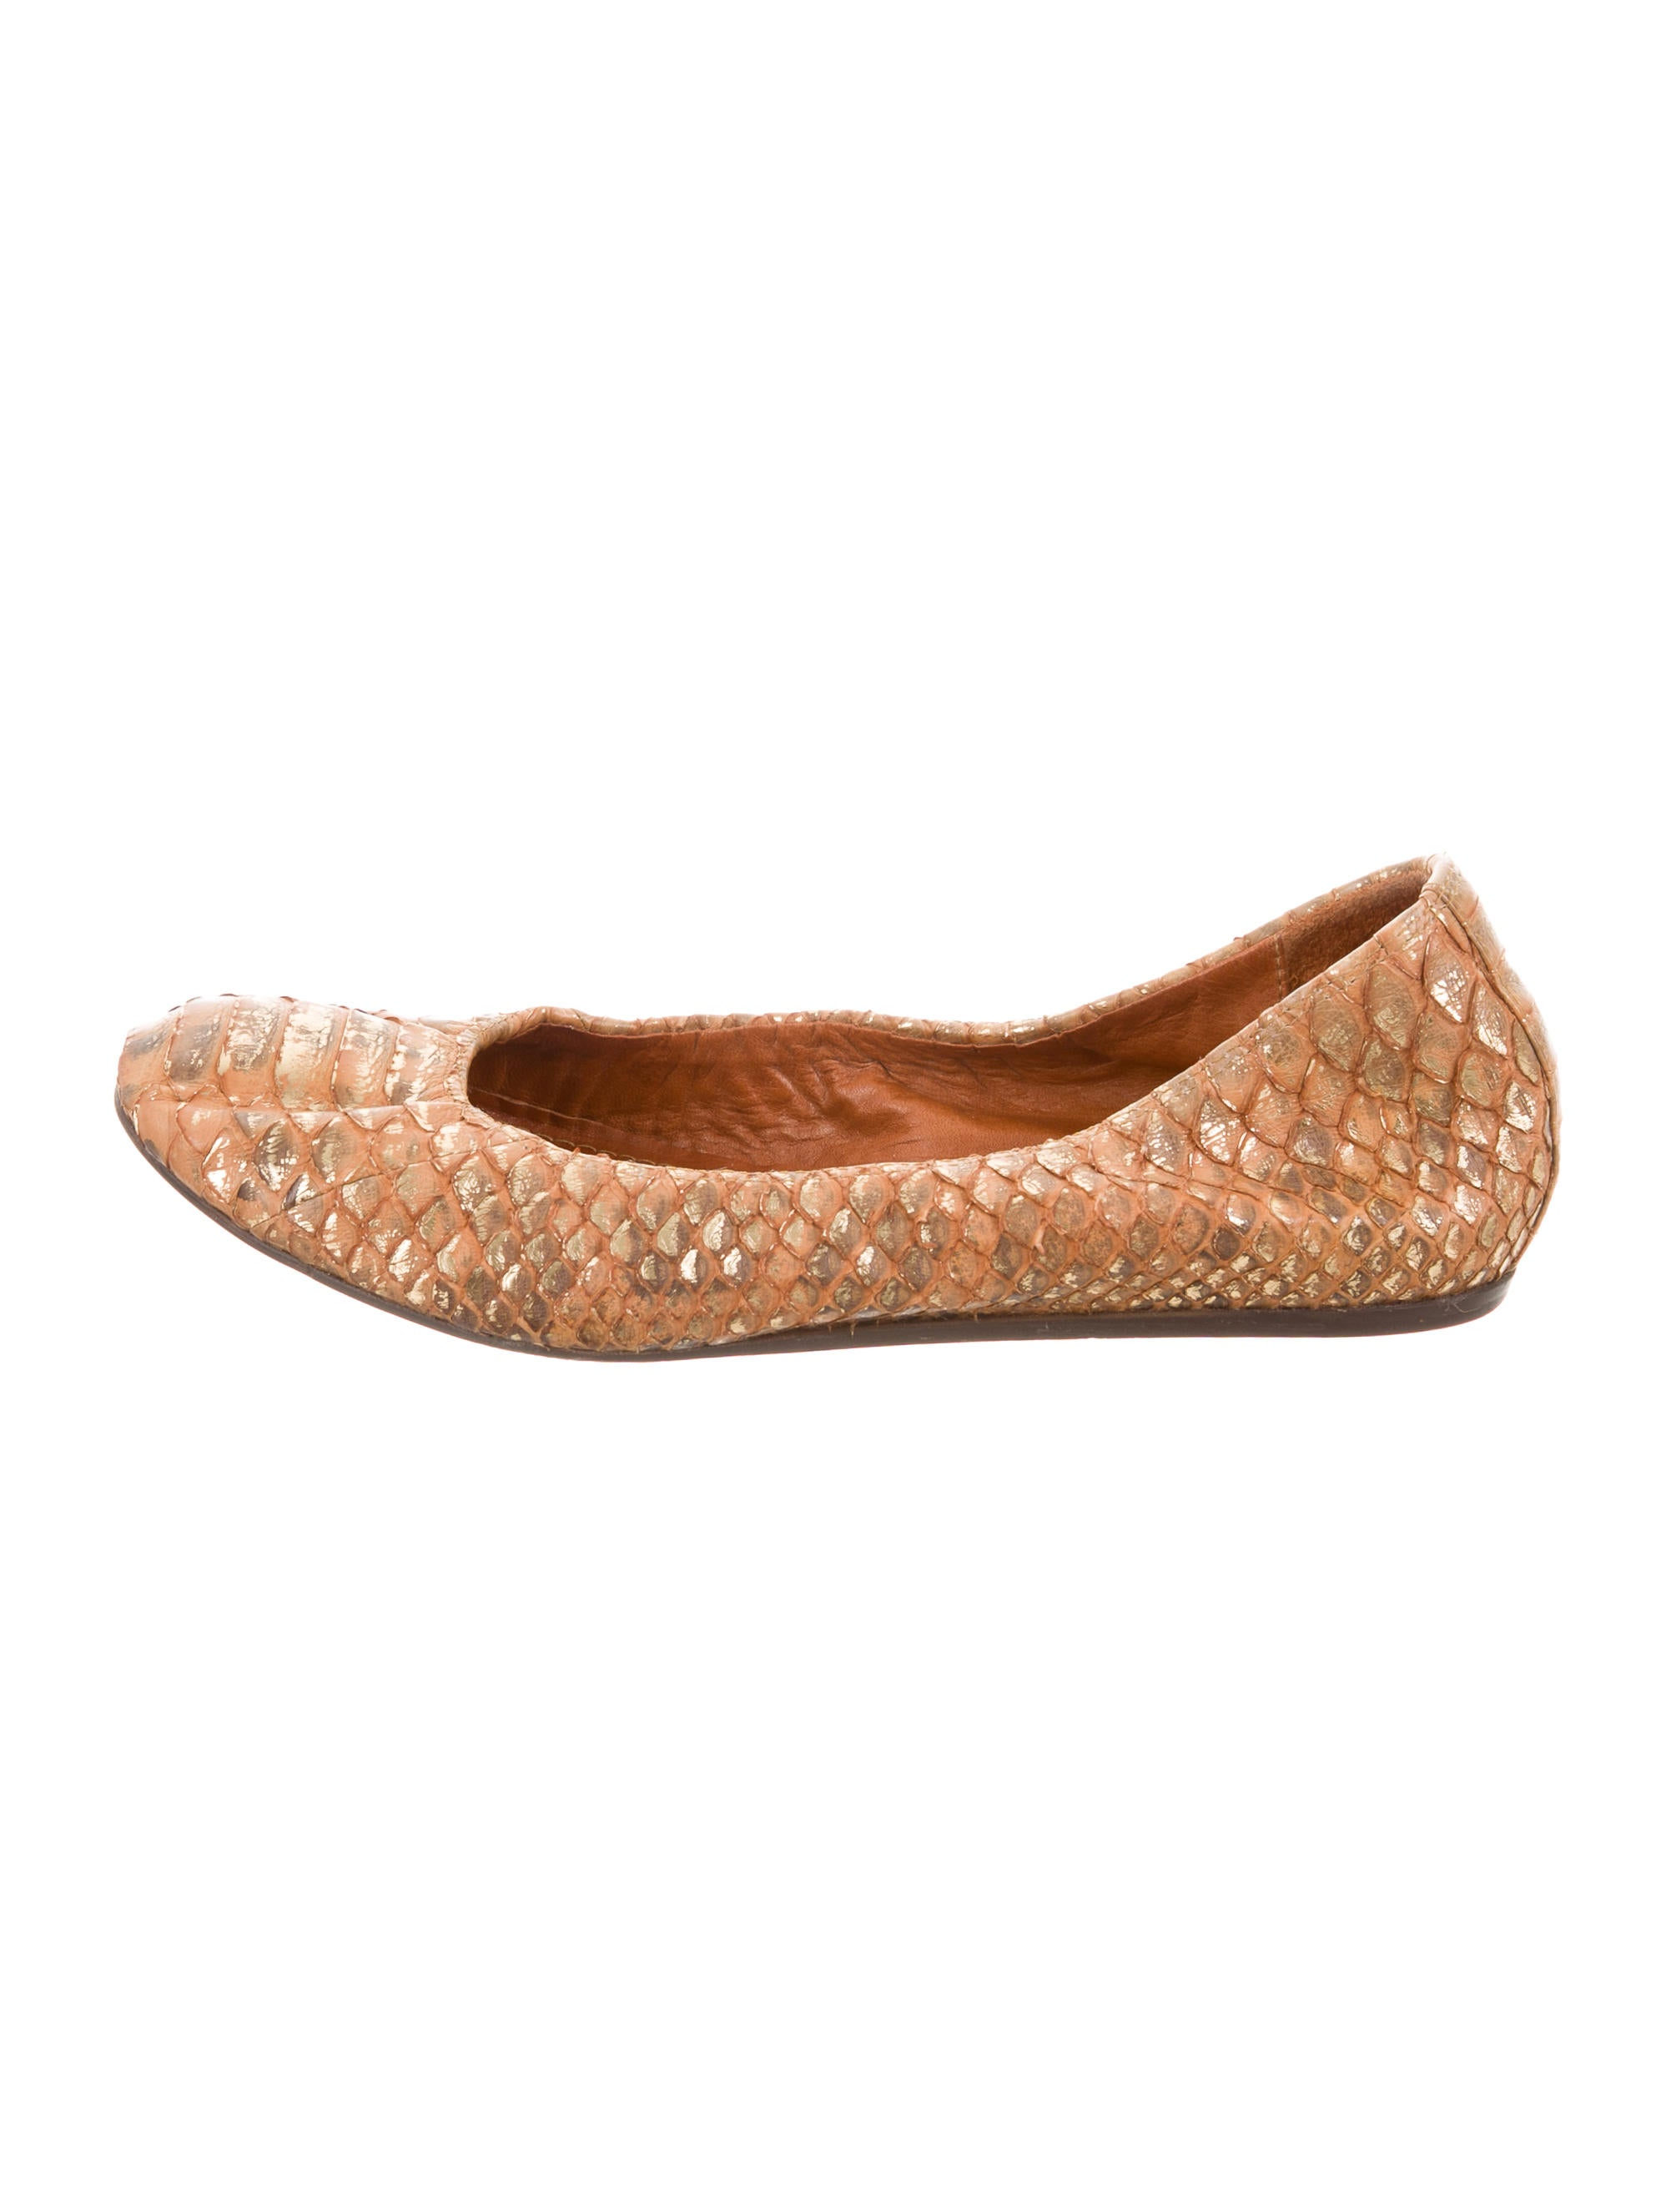 genuine online sale for sale Lanvin Python Round-Toe Loafers cheap sale pictures factory outlet sale online YDSPw6i